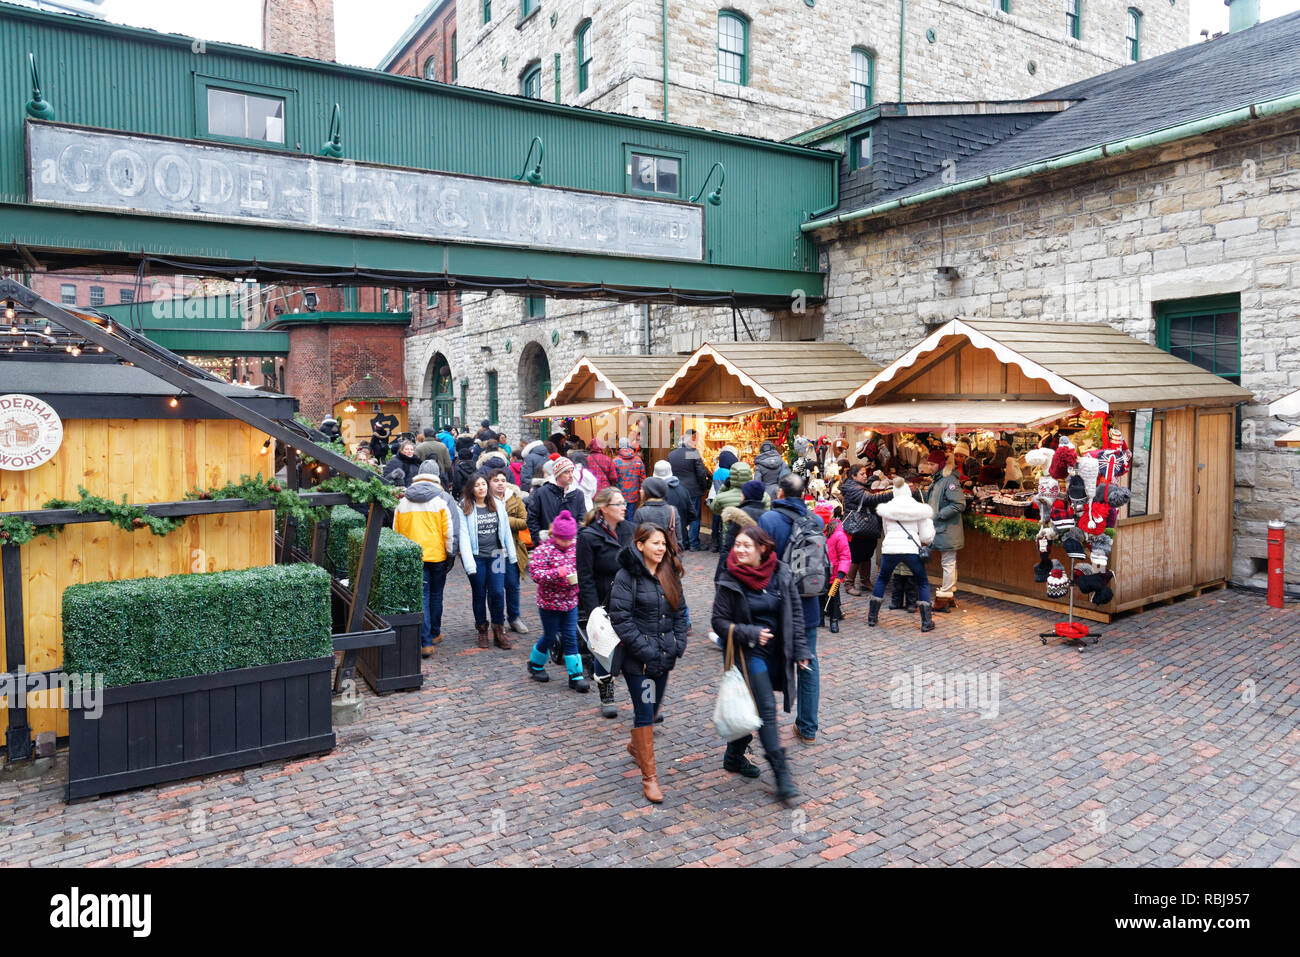 People walking in Toronto Christmas Market in The Distillery District - Stock Image